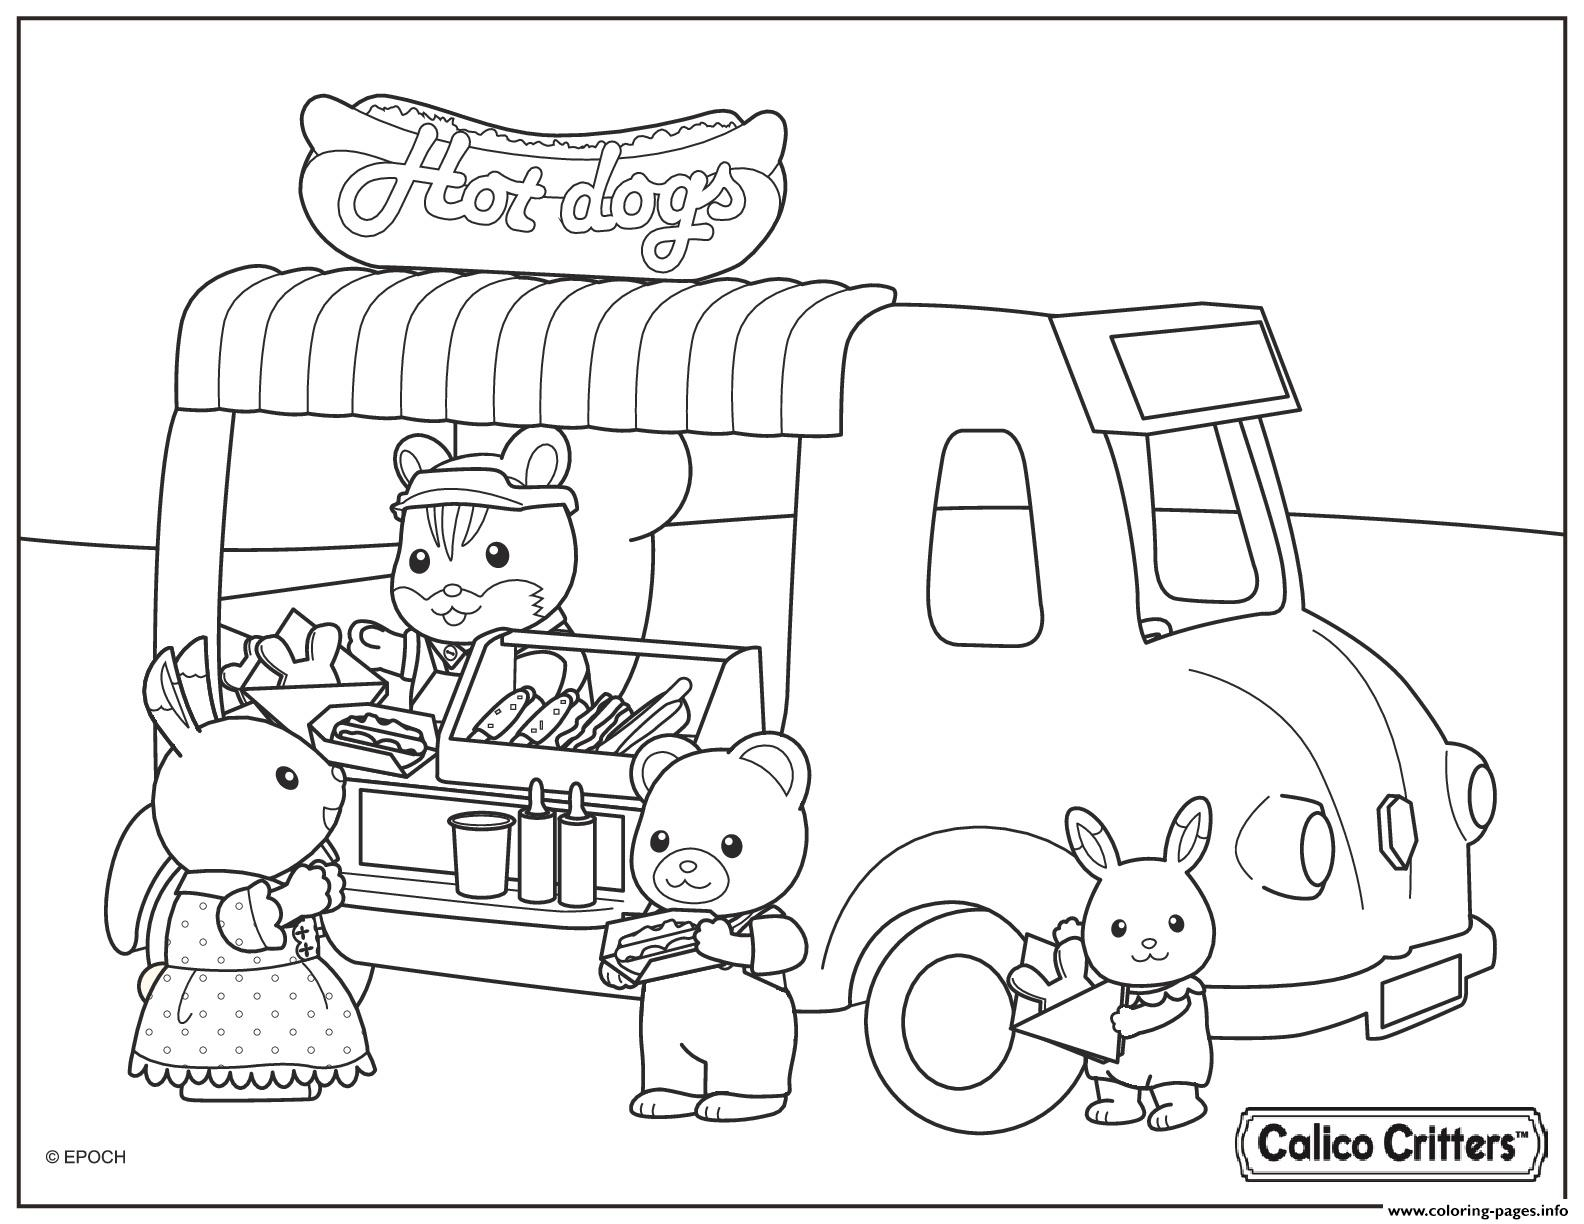 Calico Critters Selling Hot Dogs Coloring Pages Printable